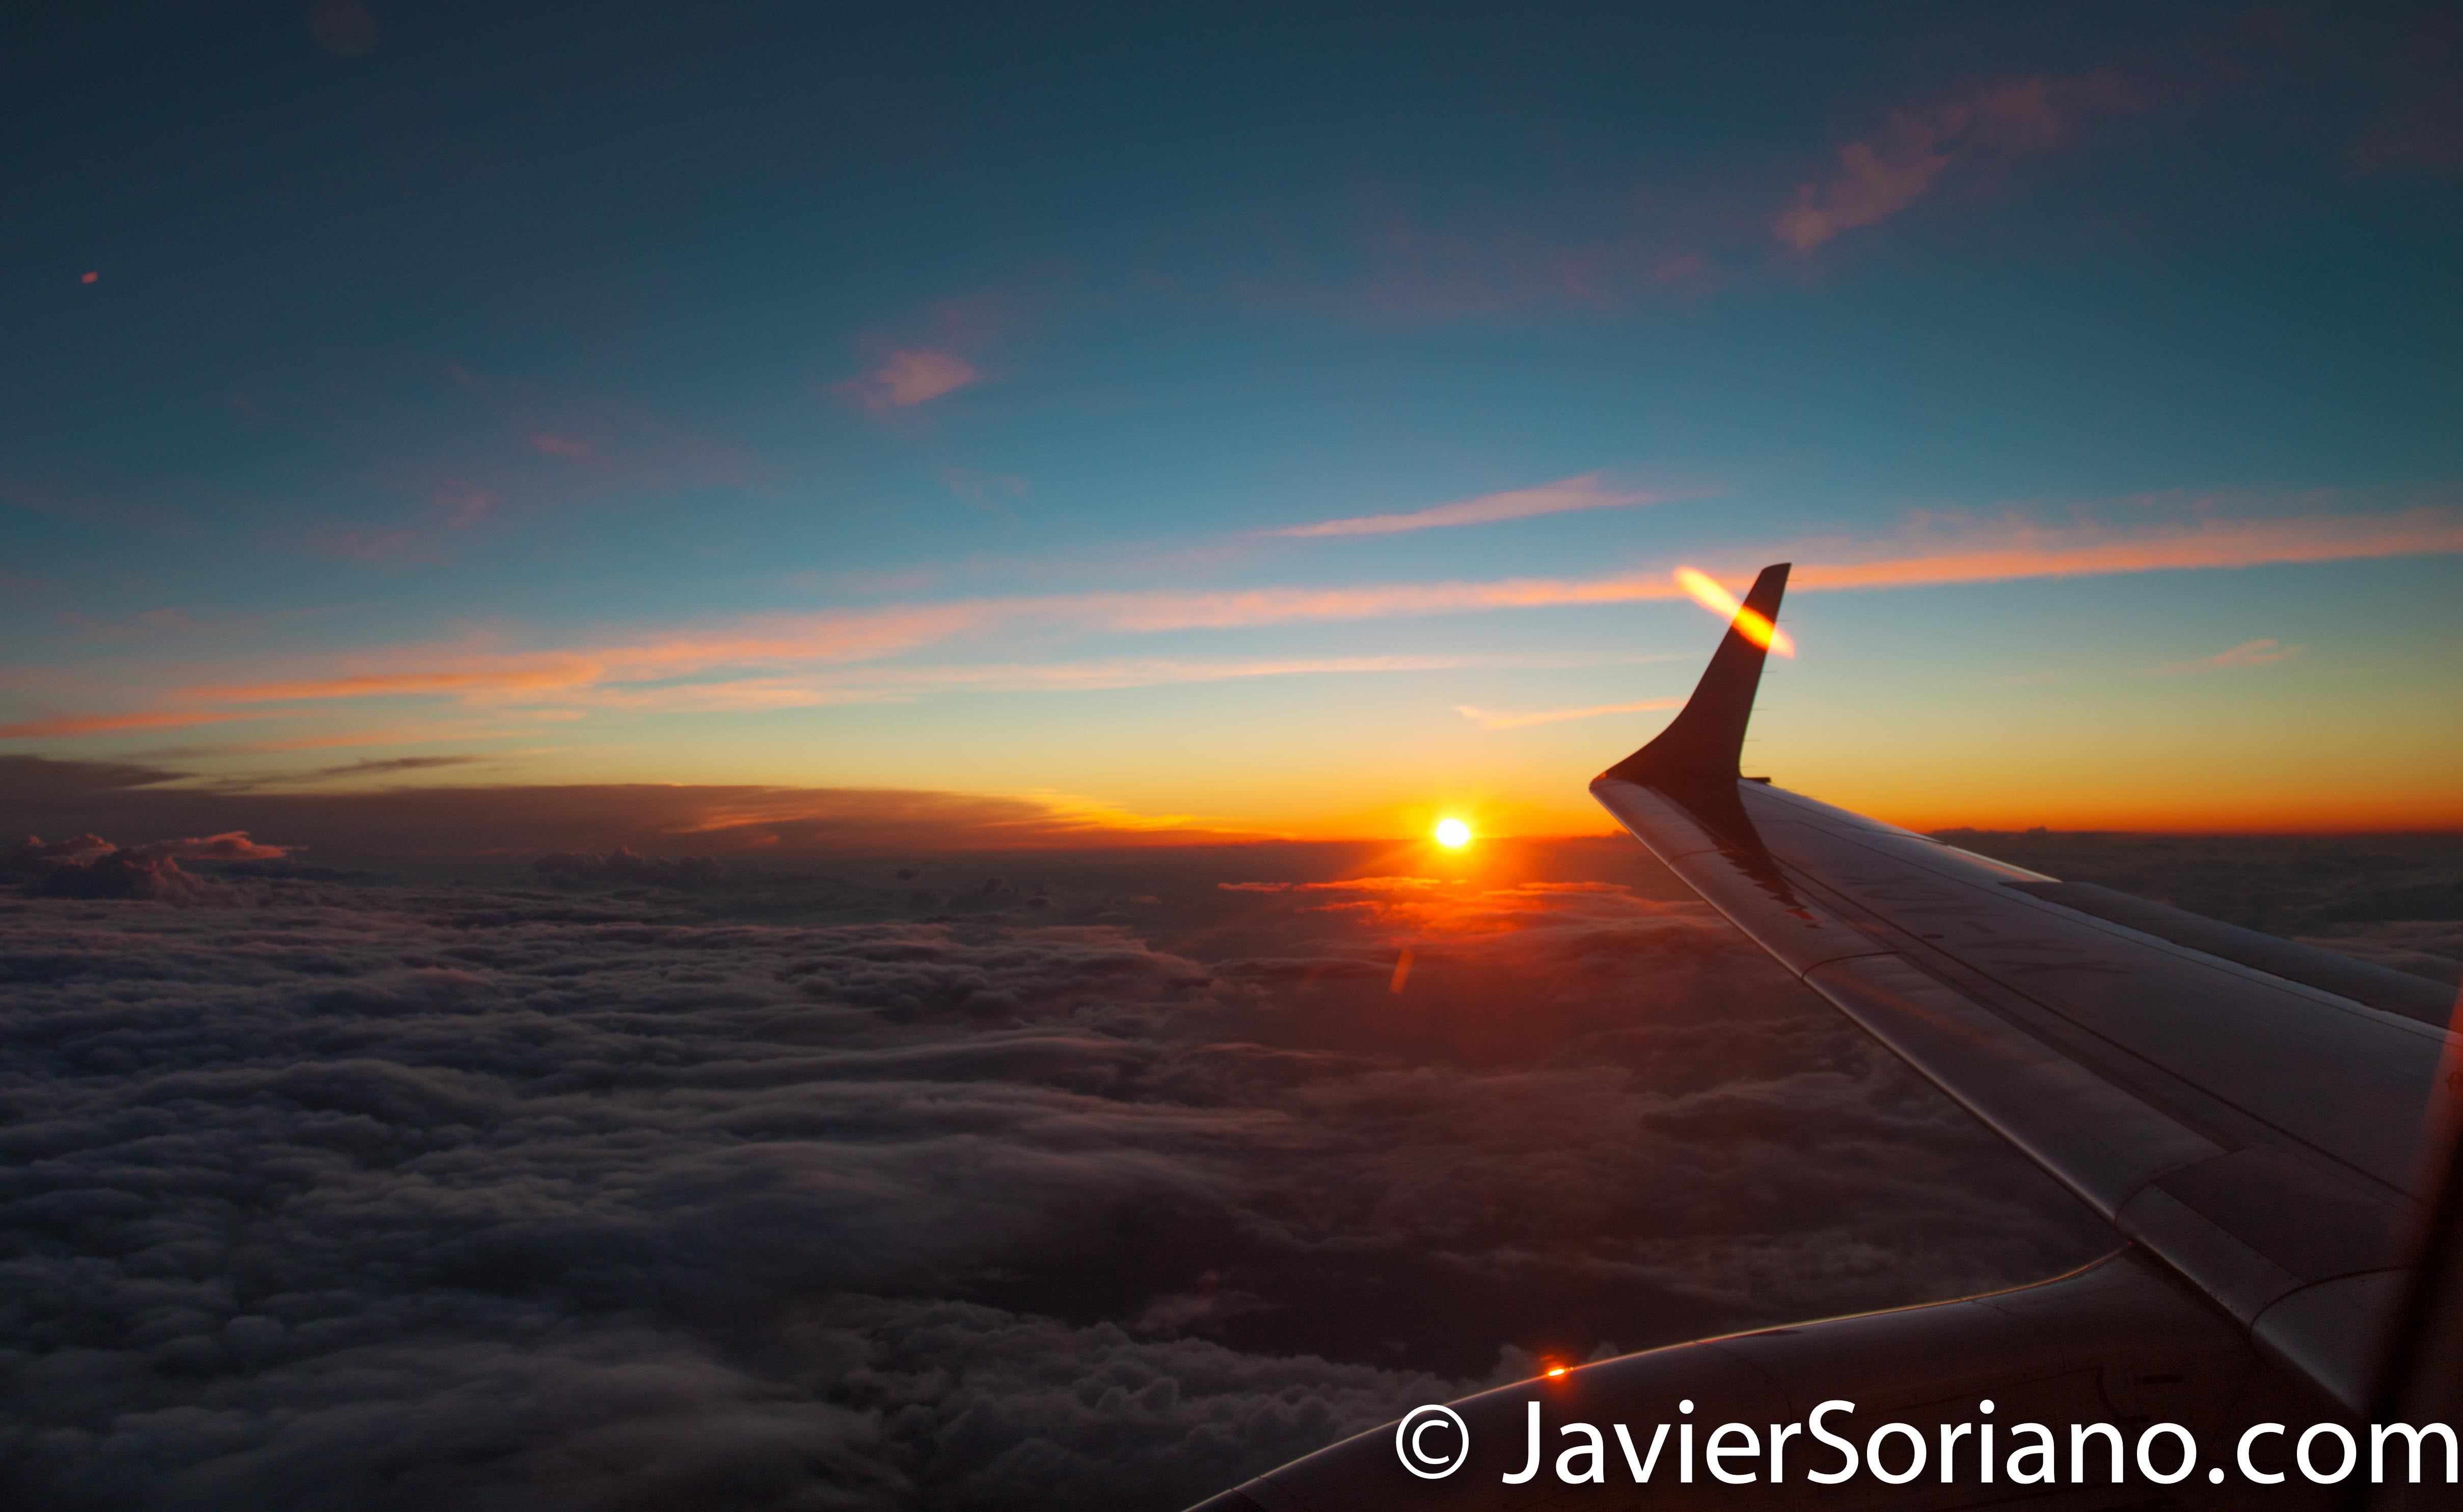 Flying on Aeromexico and enjoying an amazing sunset in the Mexican territory. Photo by Javier Soriano/JavierSoriano.com